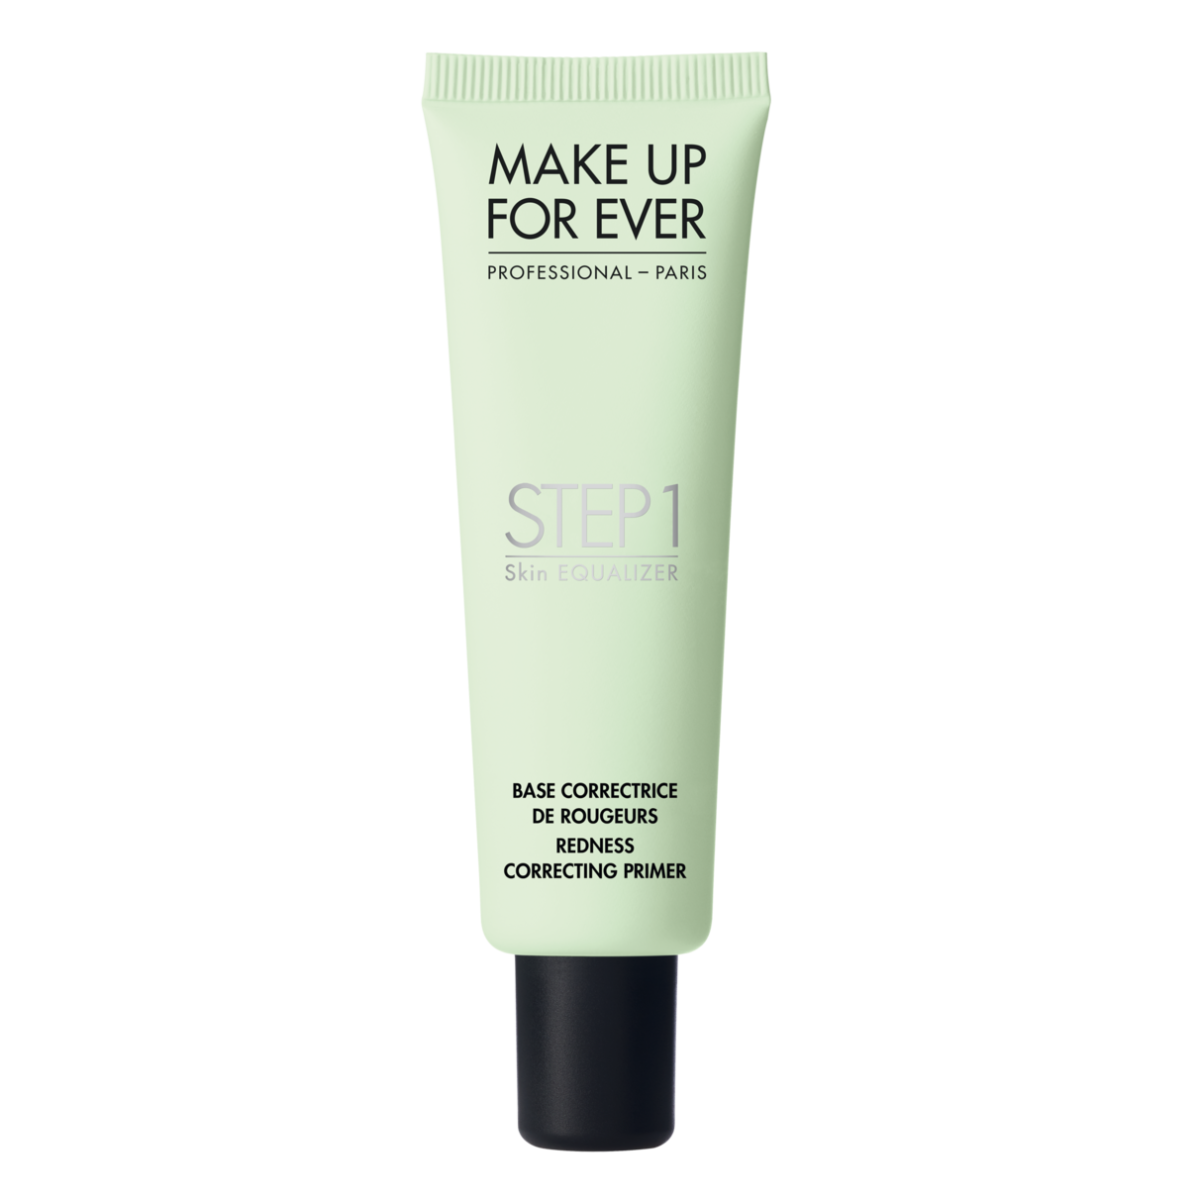 Make Up For Ever's Step 1 Skin Equalizer Redness Correcting Primer, $36, available at Sephora.